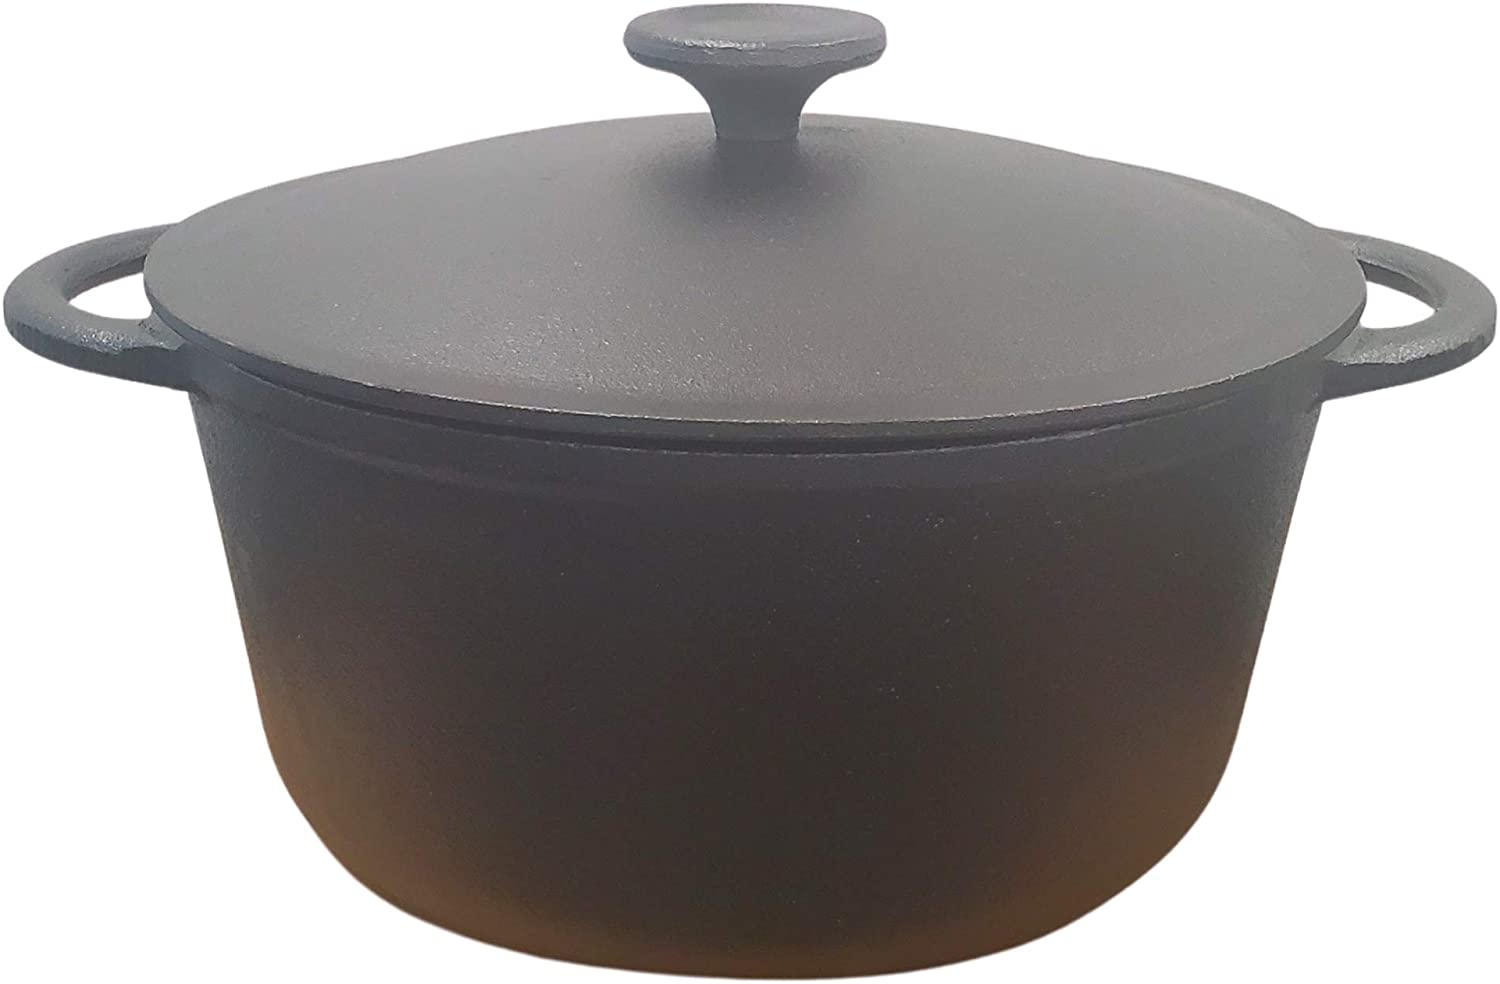 3 Quart Cast Iron Dutch Oven. Pre-Seasoned Pot with Lid and Dual Loop Handle